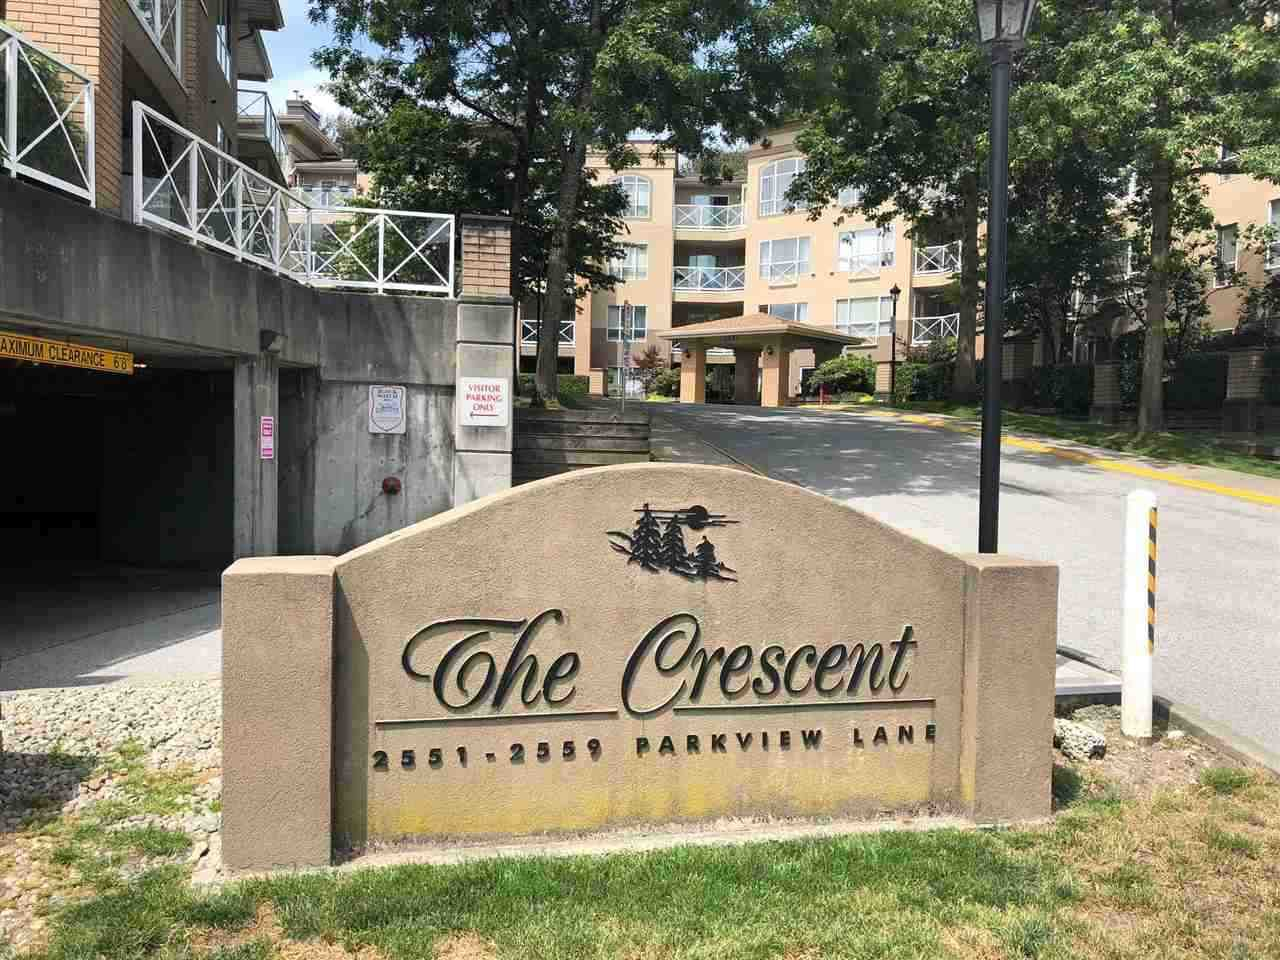 """Main Photo: 212 2558 PARKVIEW Lane in Port Coquitlam: Central Pt Coquitlam Condo for sale in """"THE CRESCENT"""" : MLS®# R2303401"""